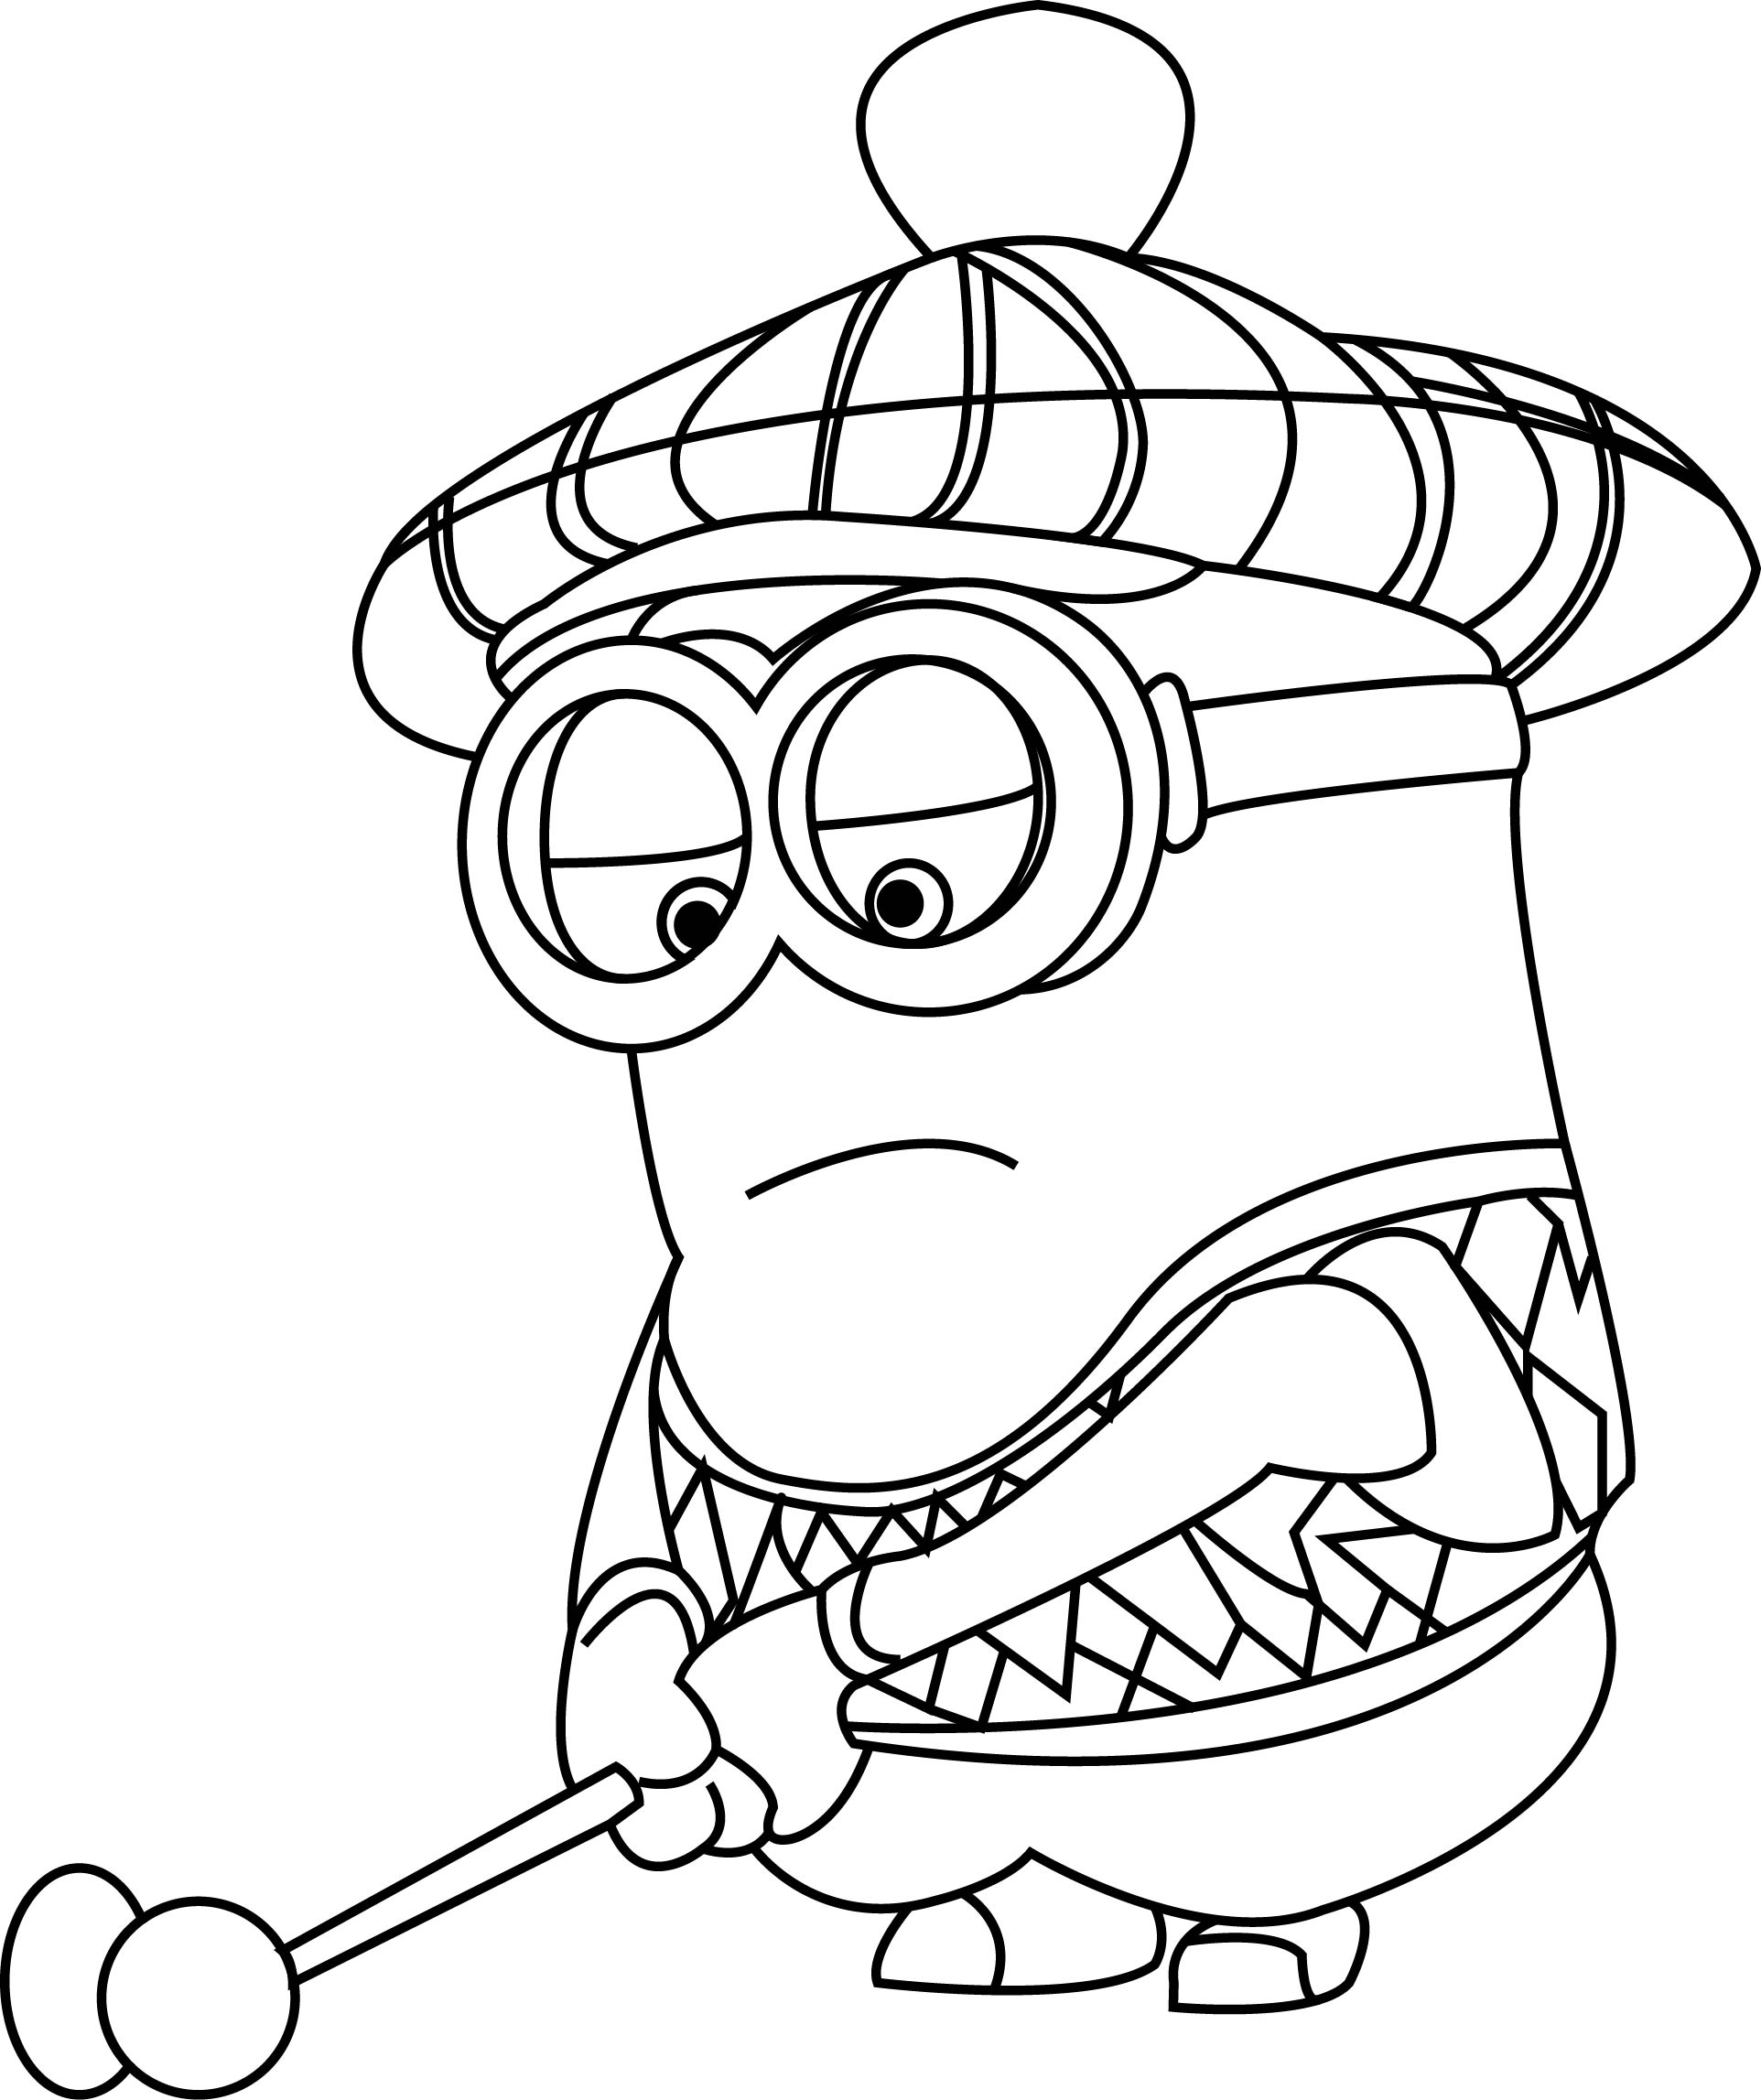 coloring picture color for kids puppy coloring pages best coloring pages for kids kids coloring for color picture